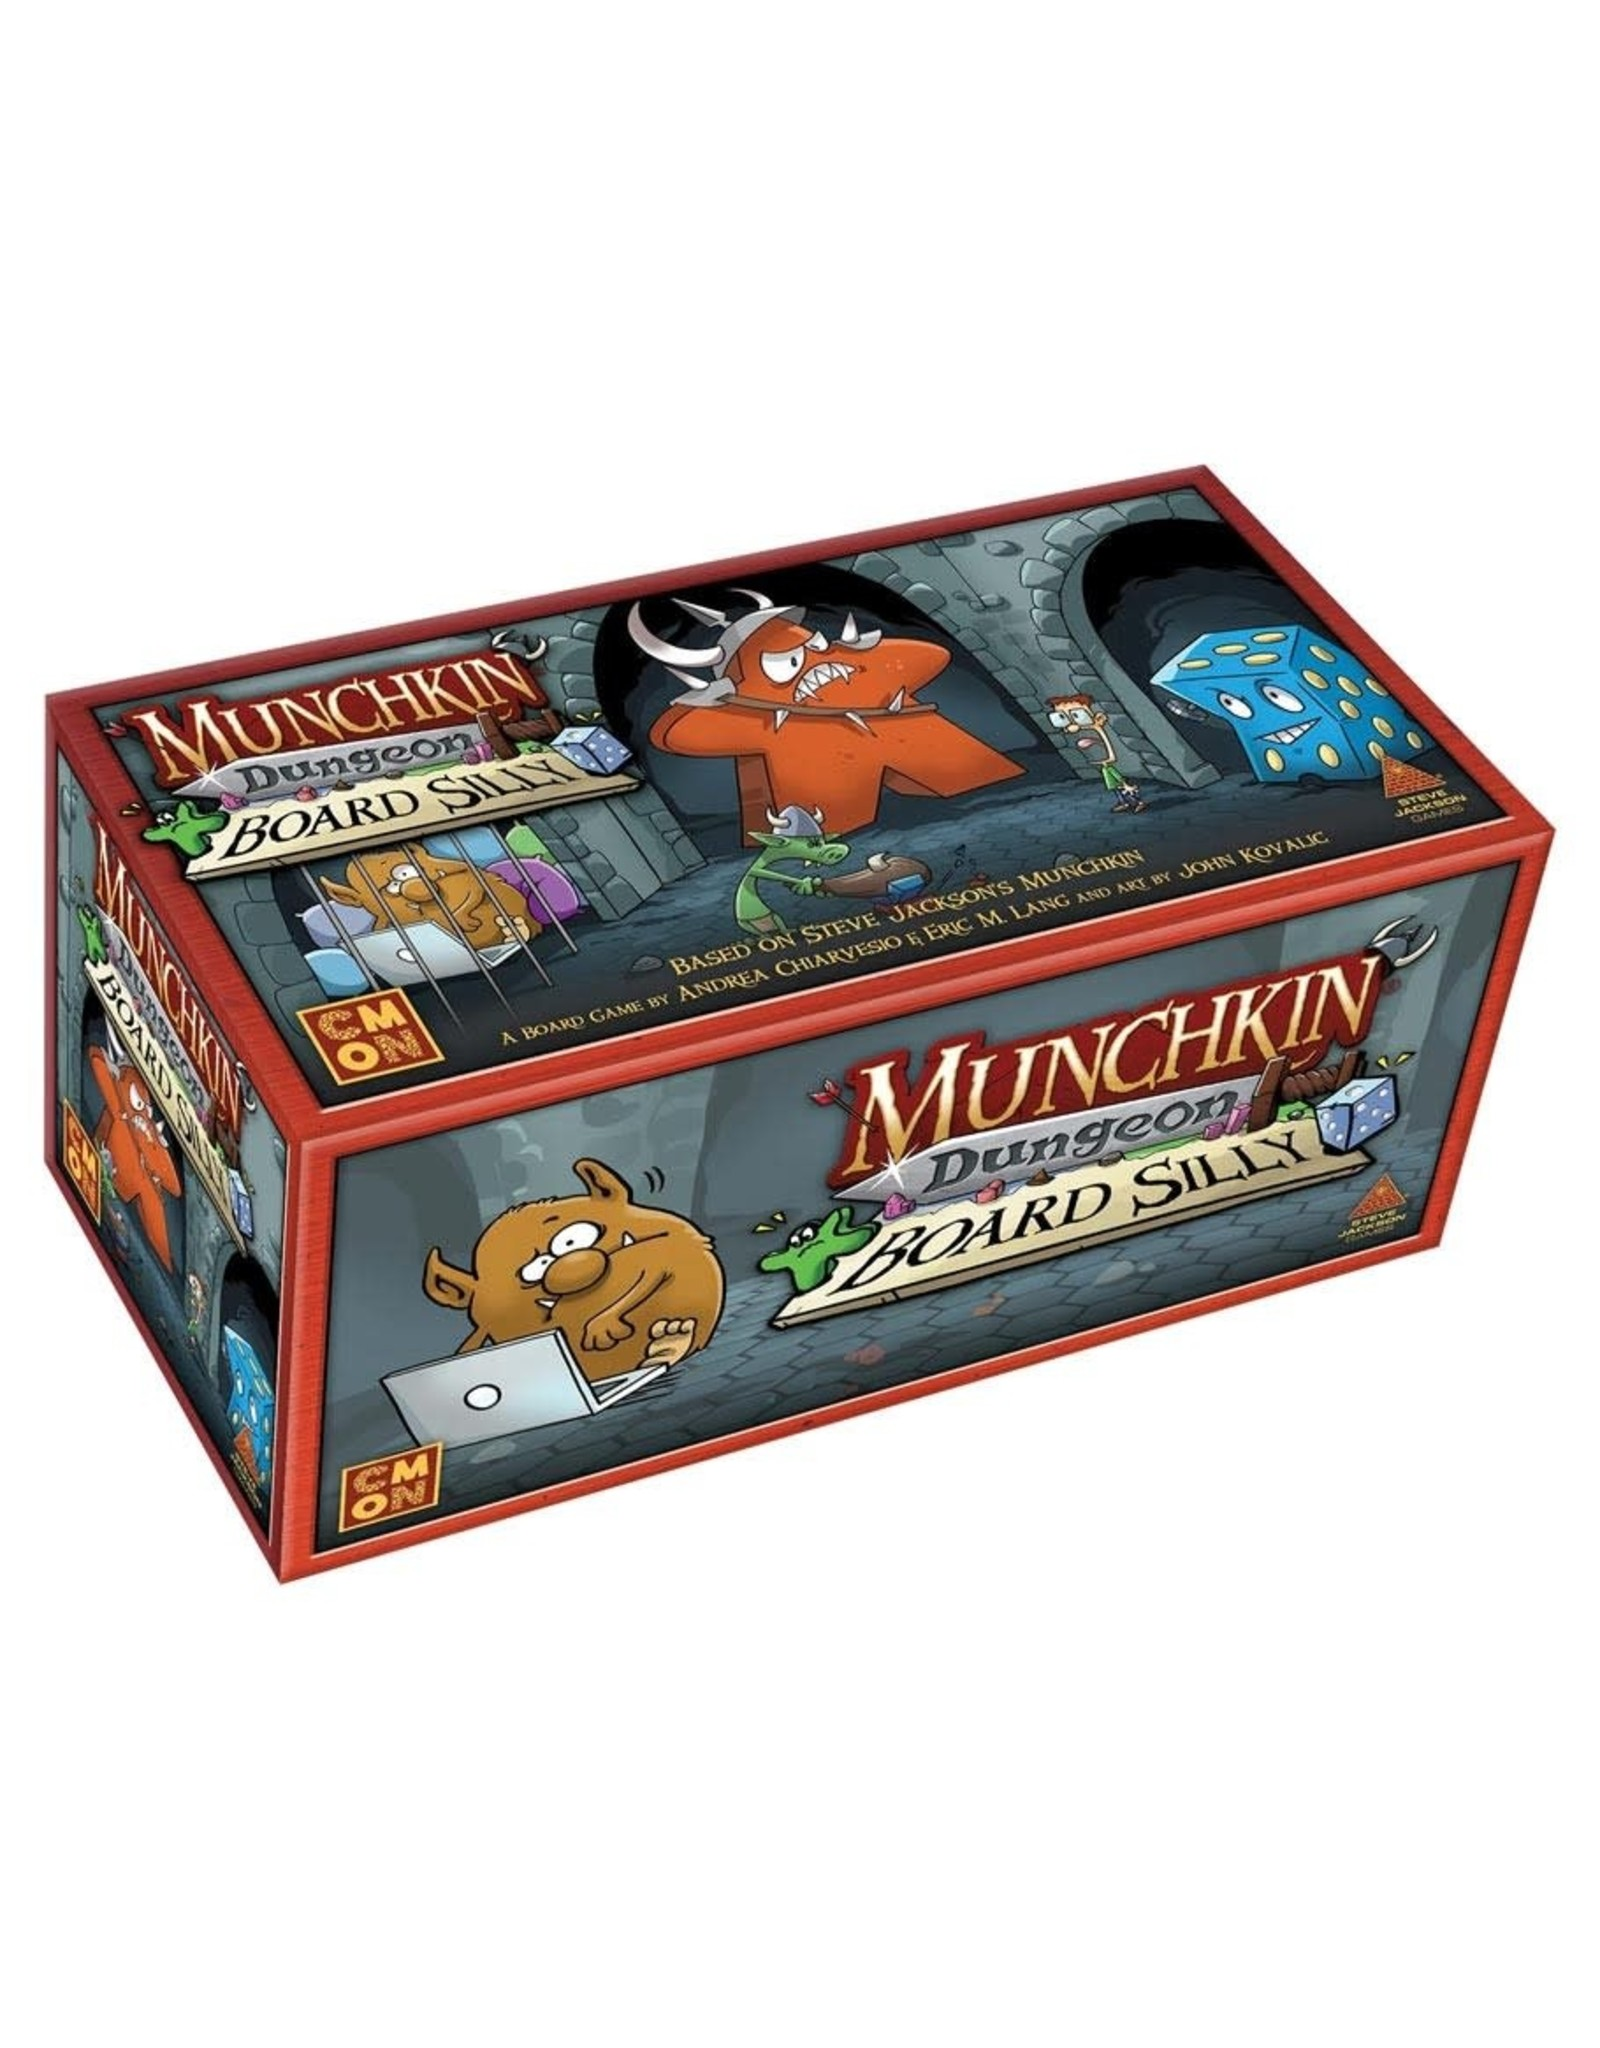 Cool Mini or Not Munchkin Dungeon: Board Silly